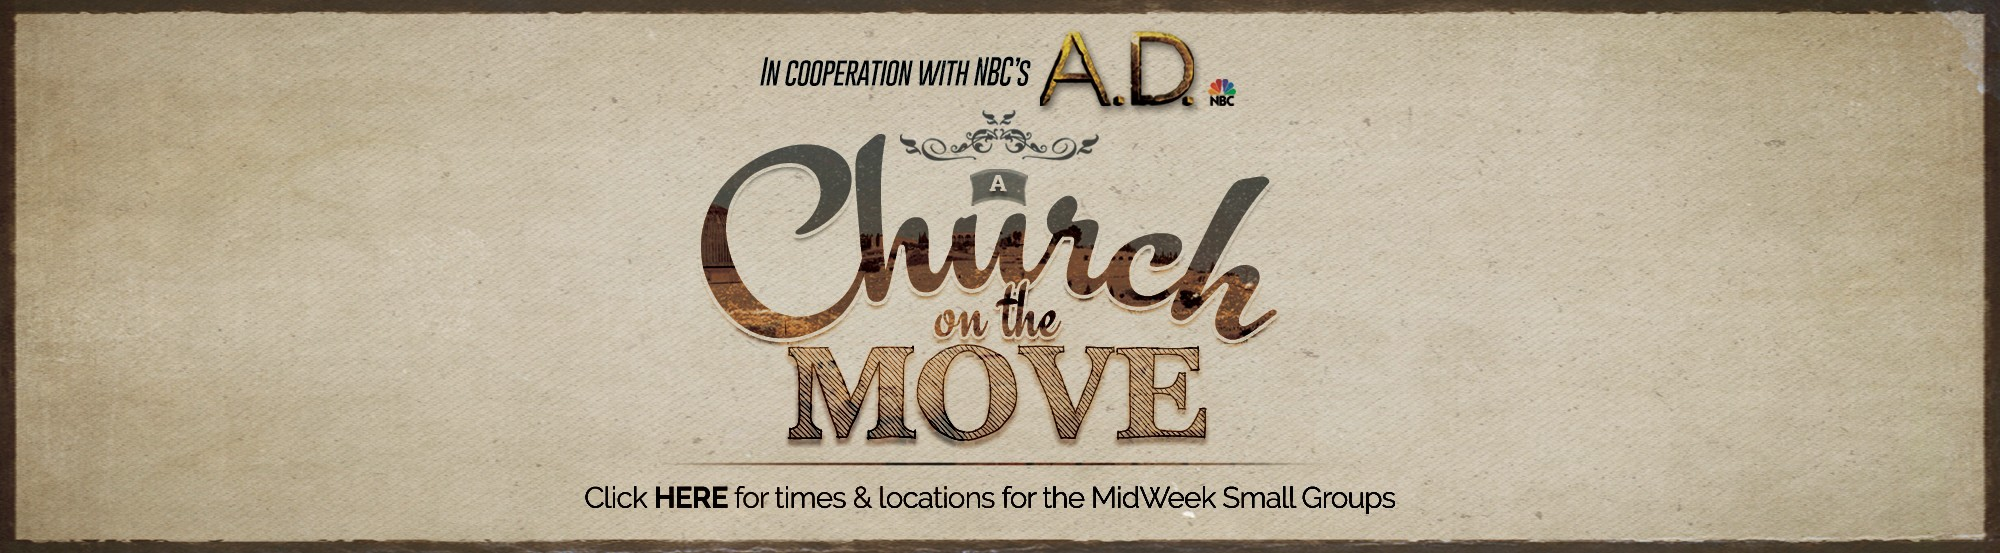 A Church on the Move small groups main